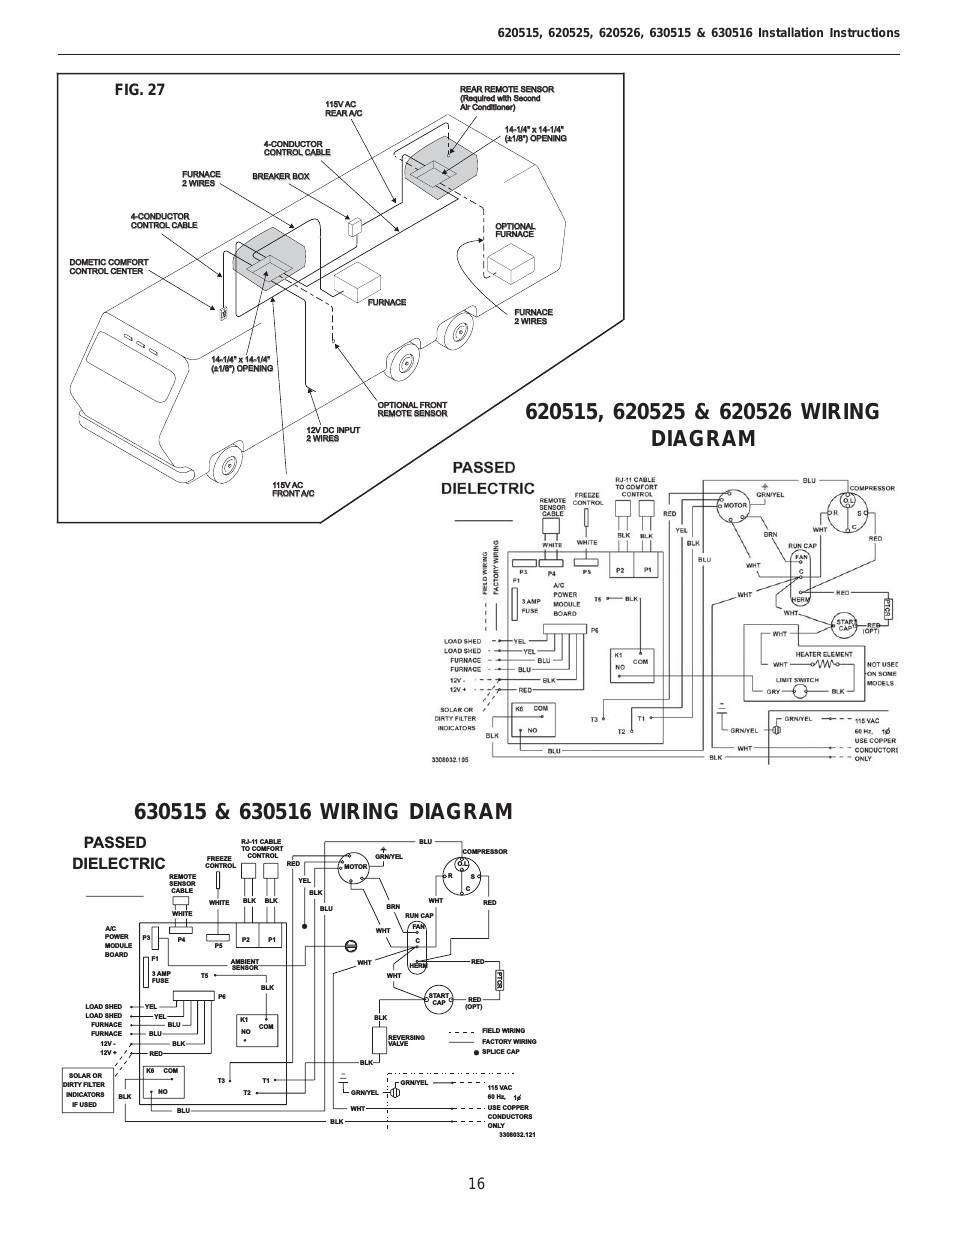 dometic penguin wiring diagram 2004 jeep grand cherokee window switch for a low profile air conditioner